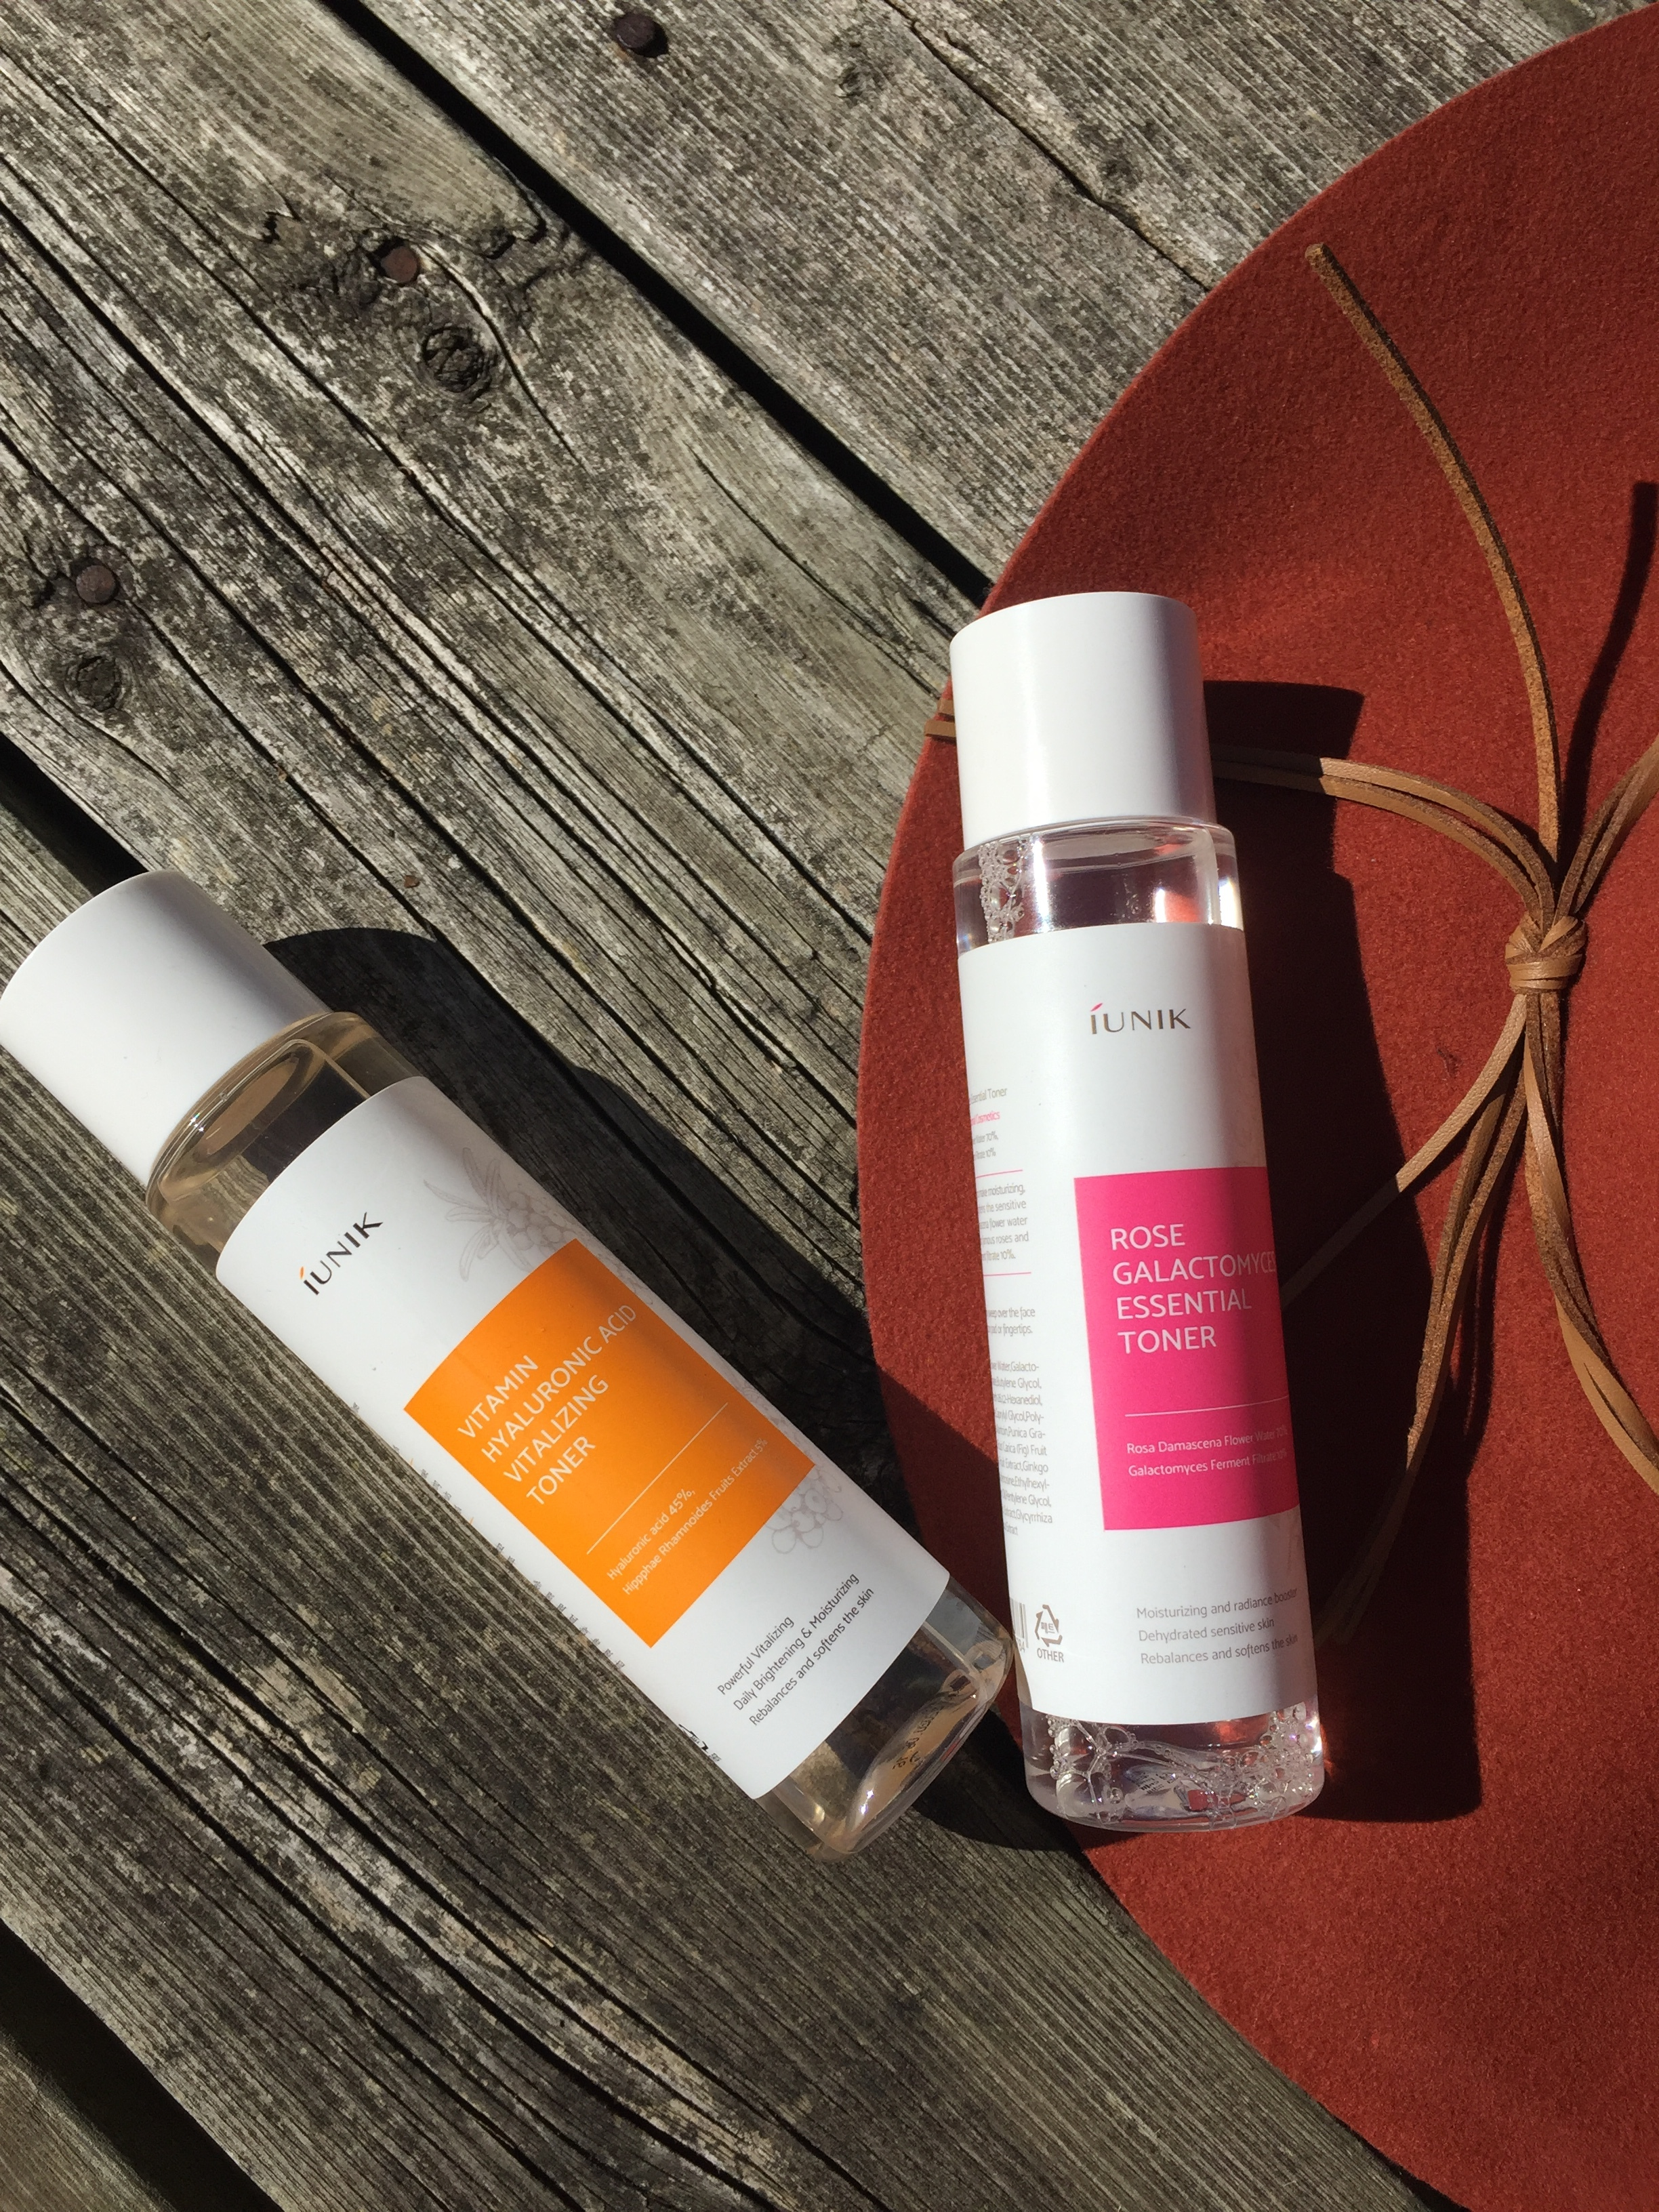 Iunik Rose and Vitamin C toners